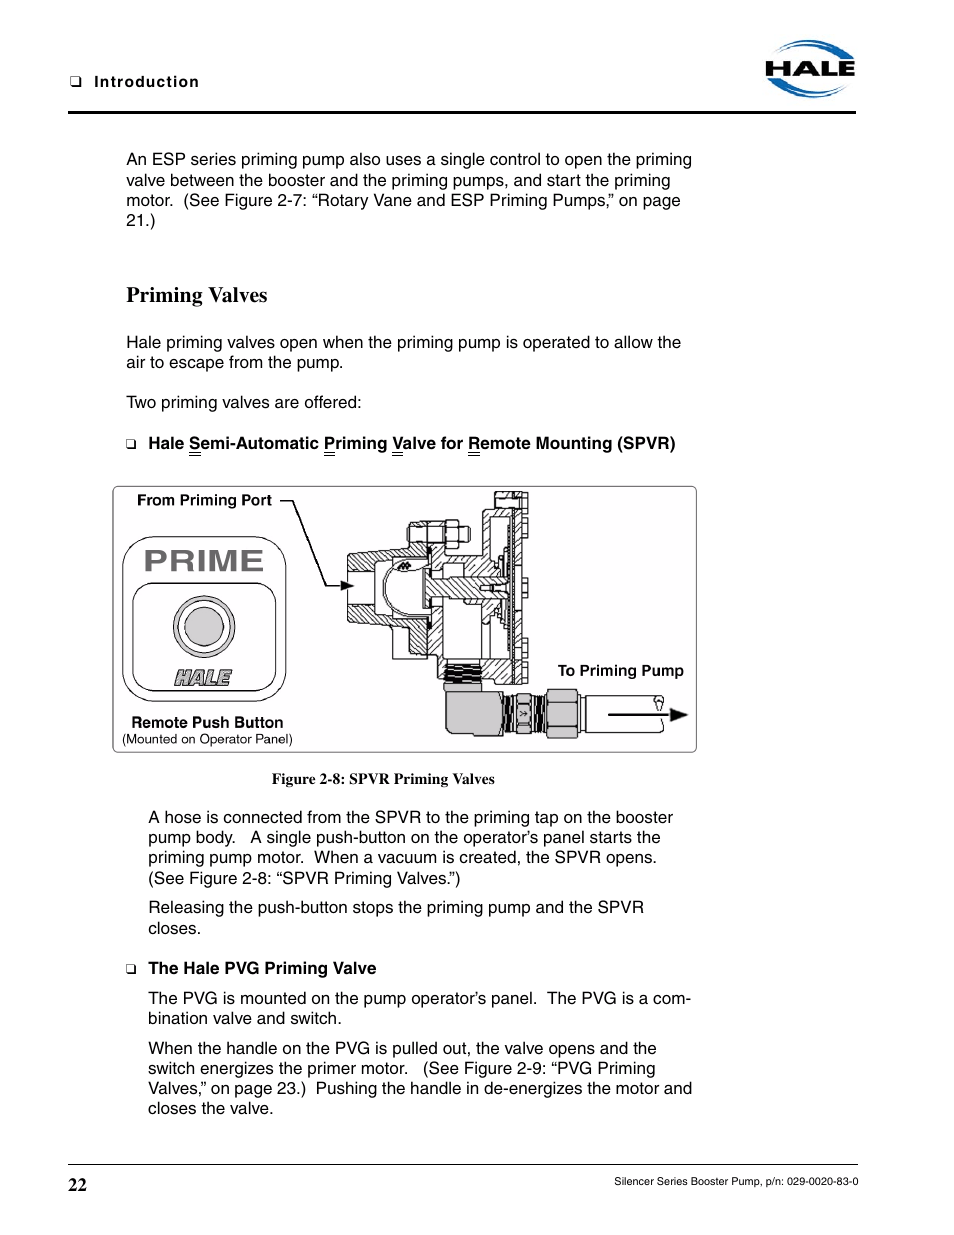 hight resolution of hale primer pump diagram wiring diagram page hale primer pump diagram